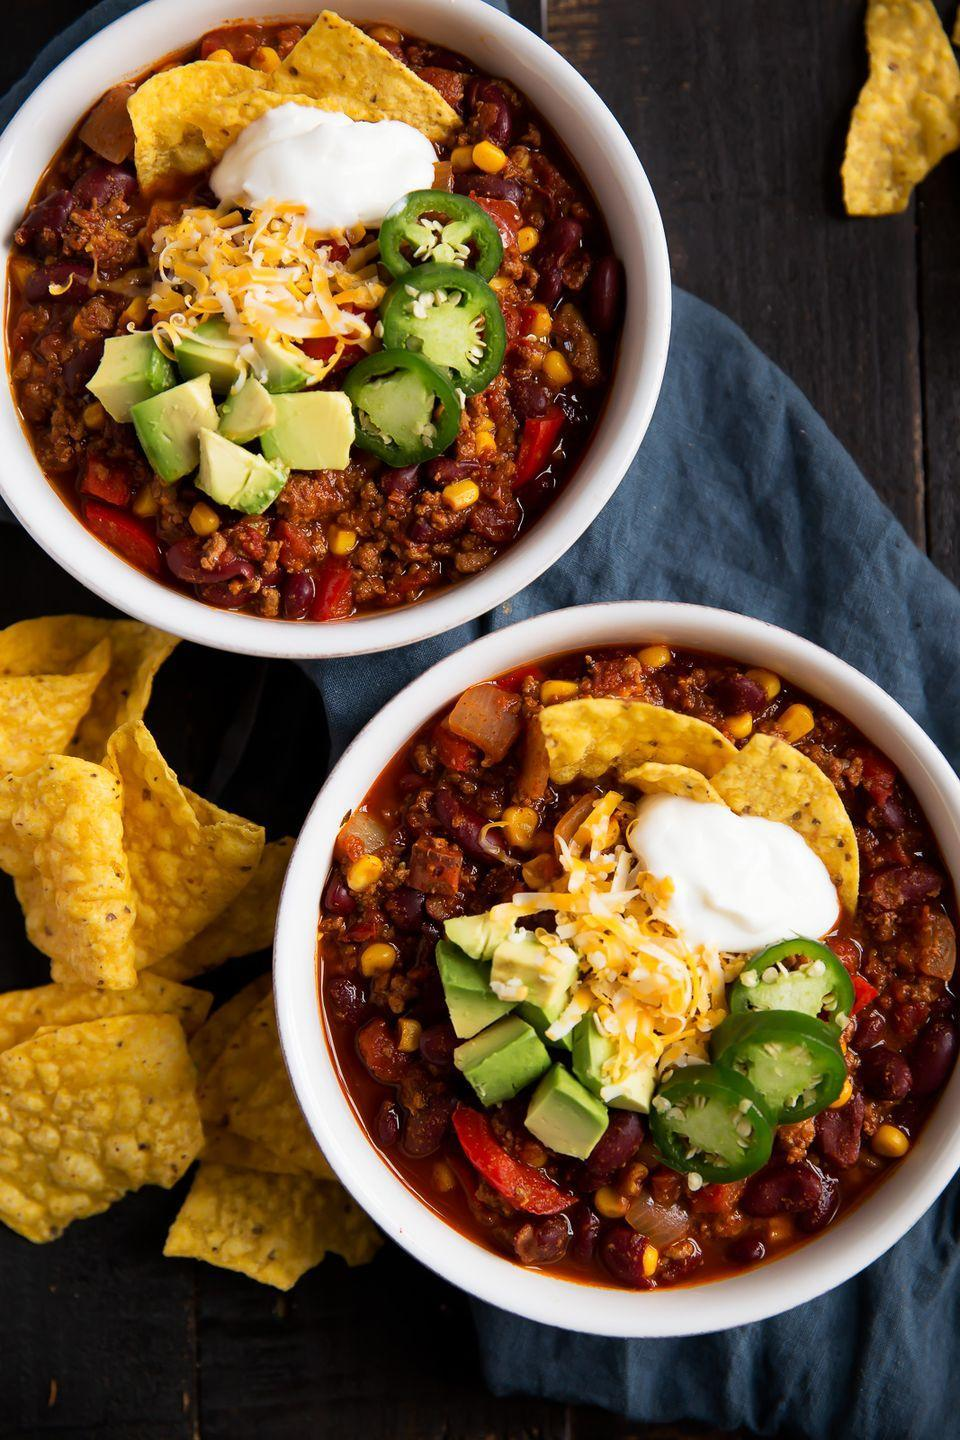 "<p>Here's a chili so healthy you can eat two bowls, depending on how many chips you pair it with.</p><p><a href=""https://www.goodhousekeeping.com/food-recipes/a10650/turkey-chili-pot-pie-recipe-ghk0111/"" rel=""nofollow noopener"" target=""_blank"" data-ylk=""slk:Get the recipe from Ambitious Kitchen »"" class=""link rapid-noclick-resp""><em>Get the recipe from Ambitious Kitchen »</em></a></p>"